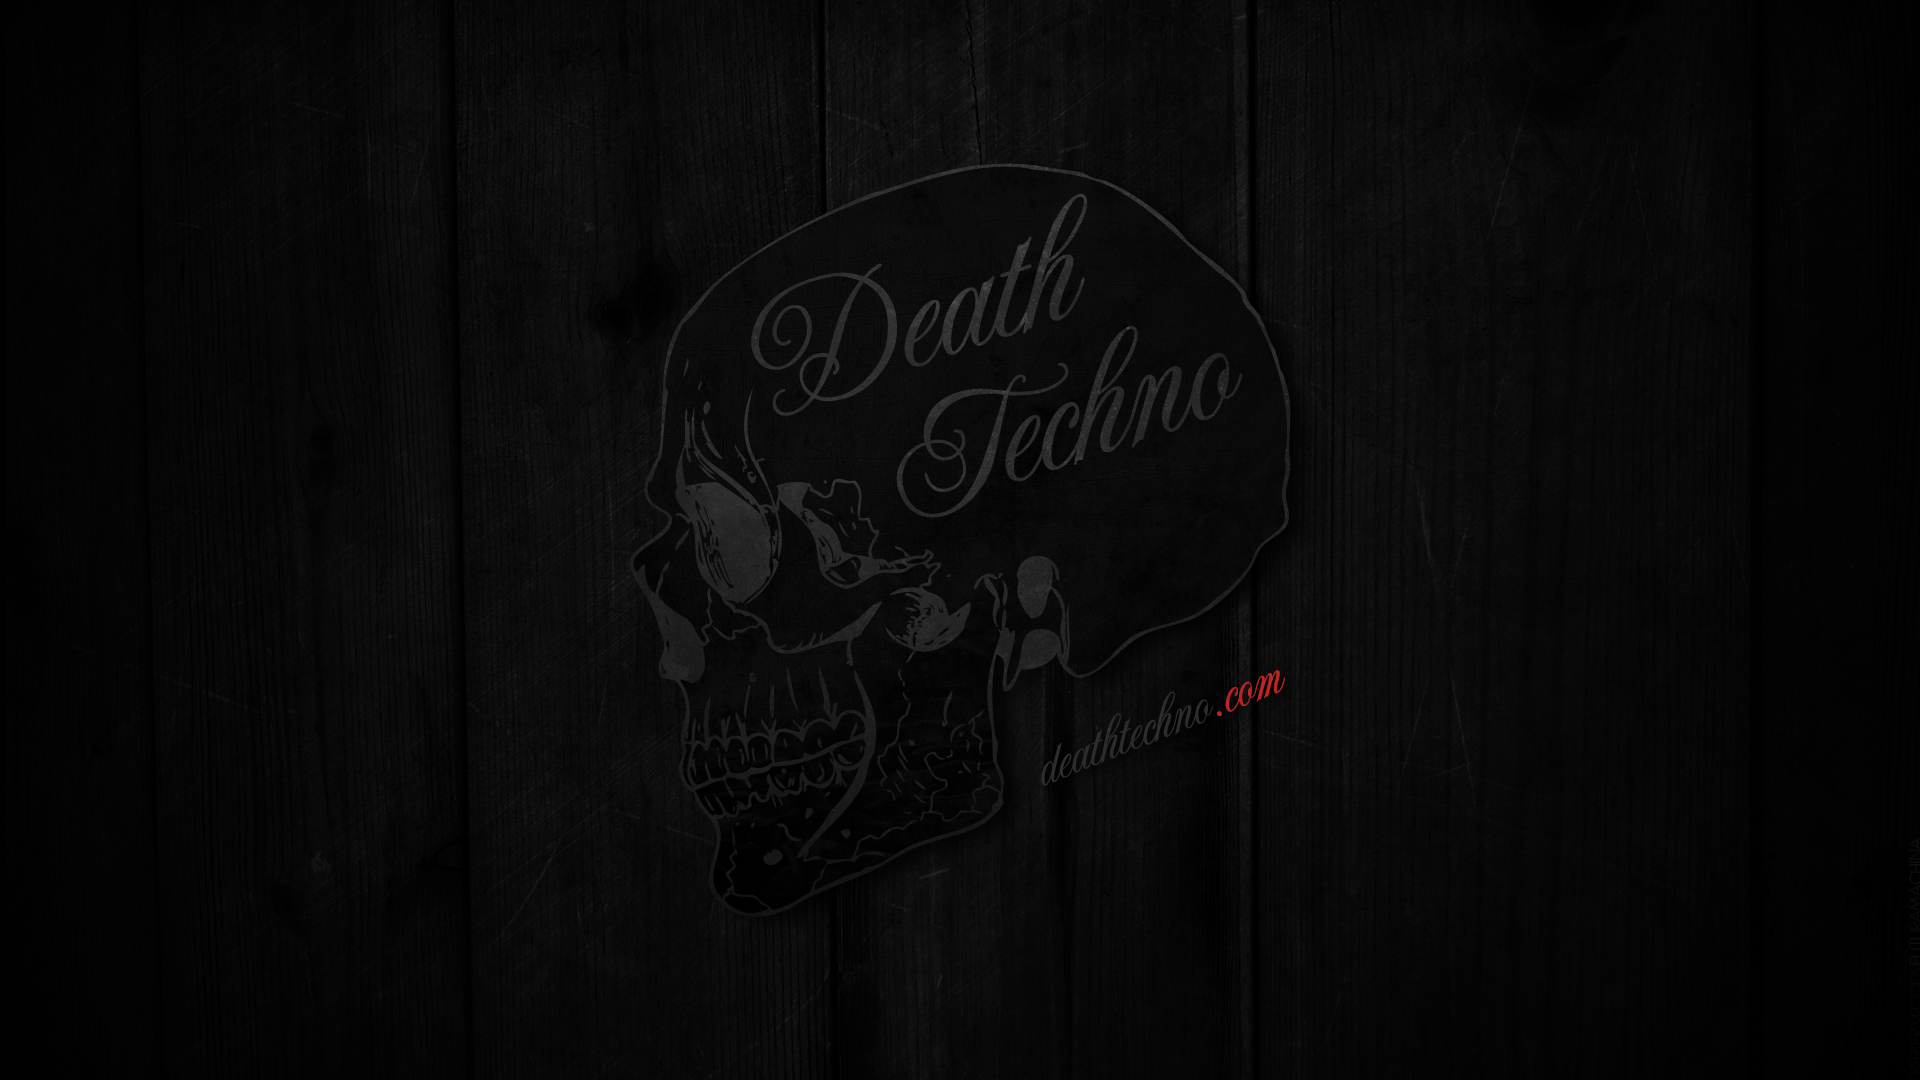 graphics - death techno